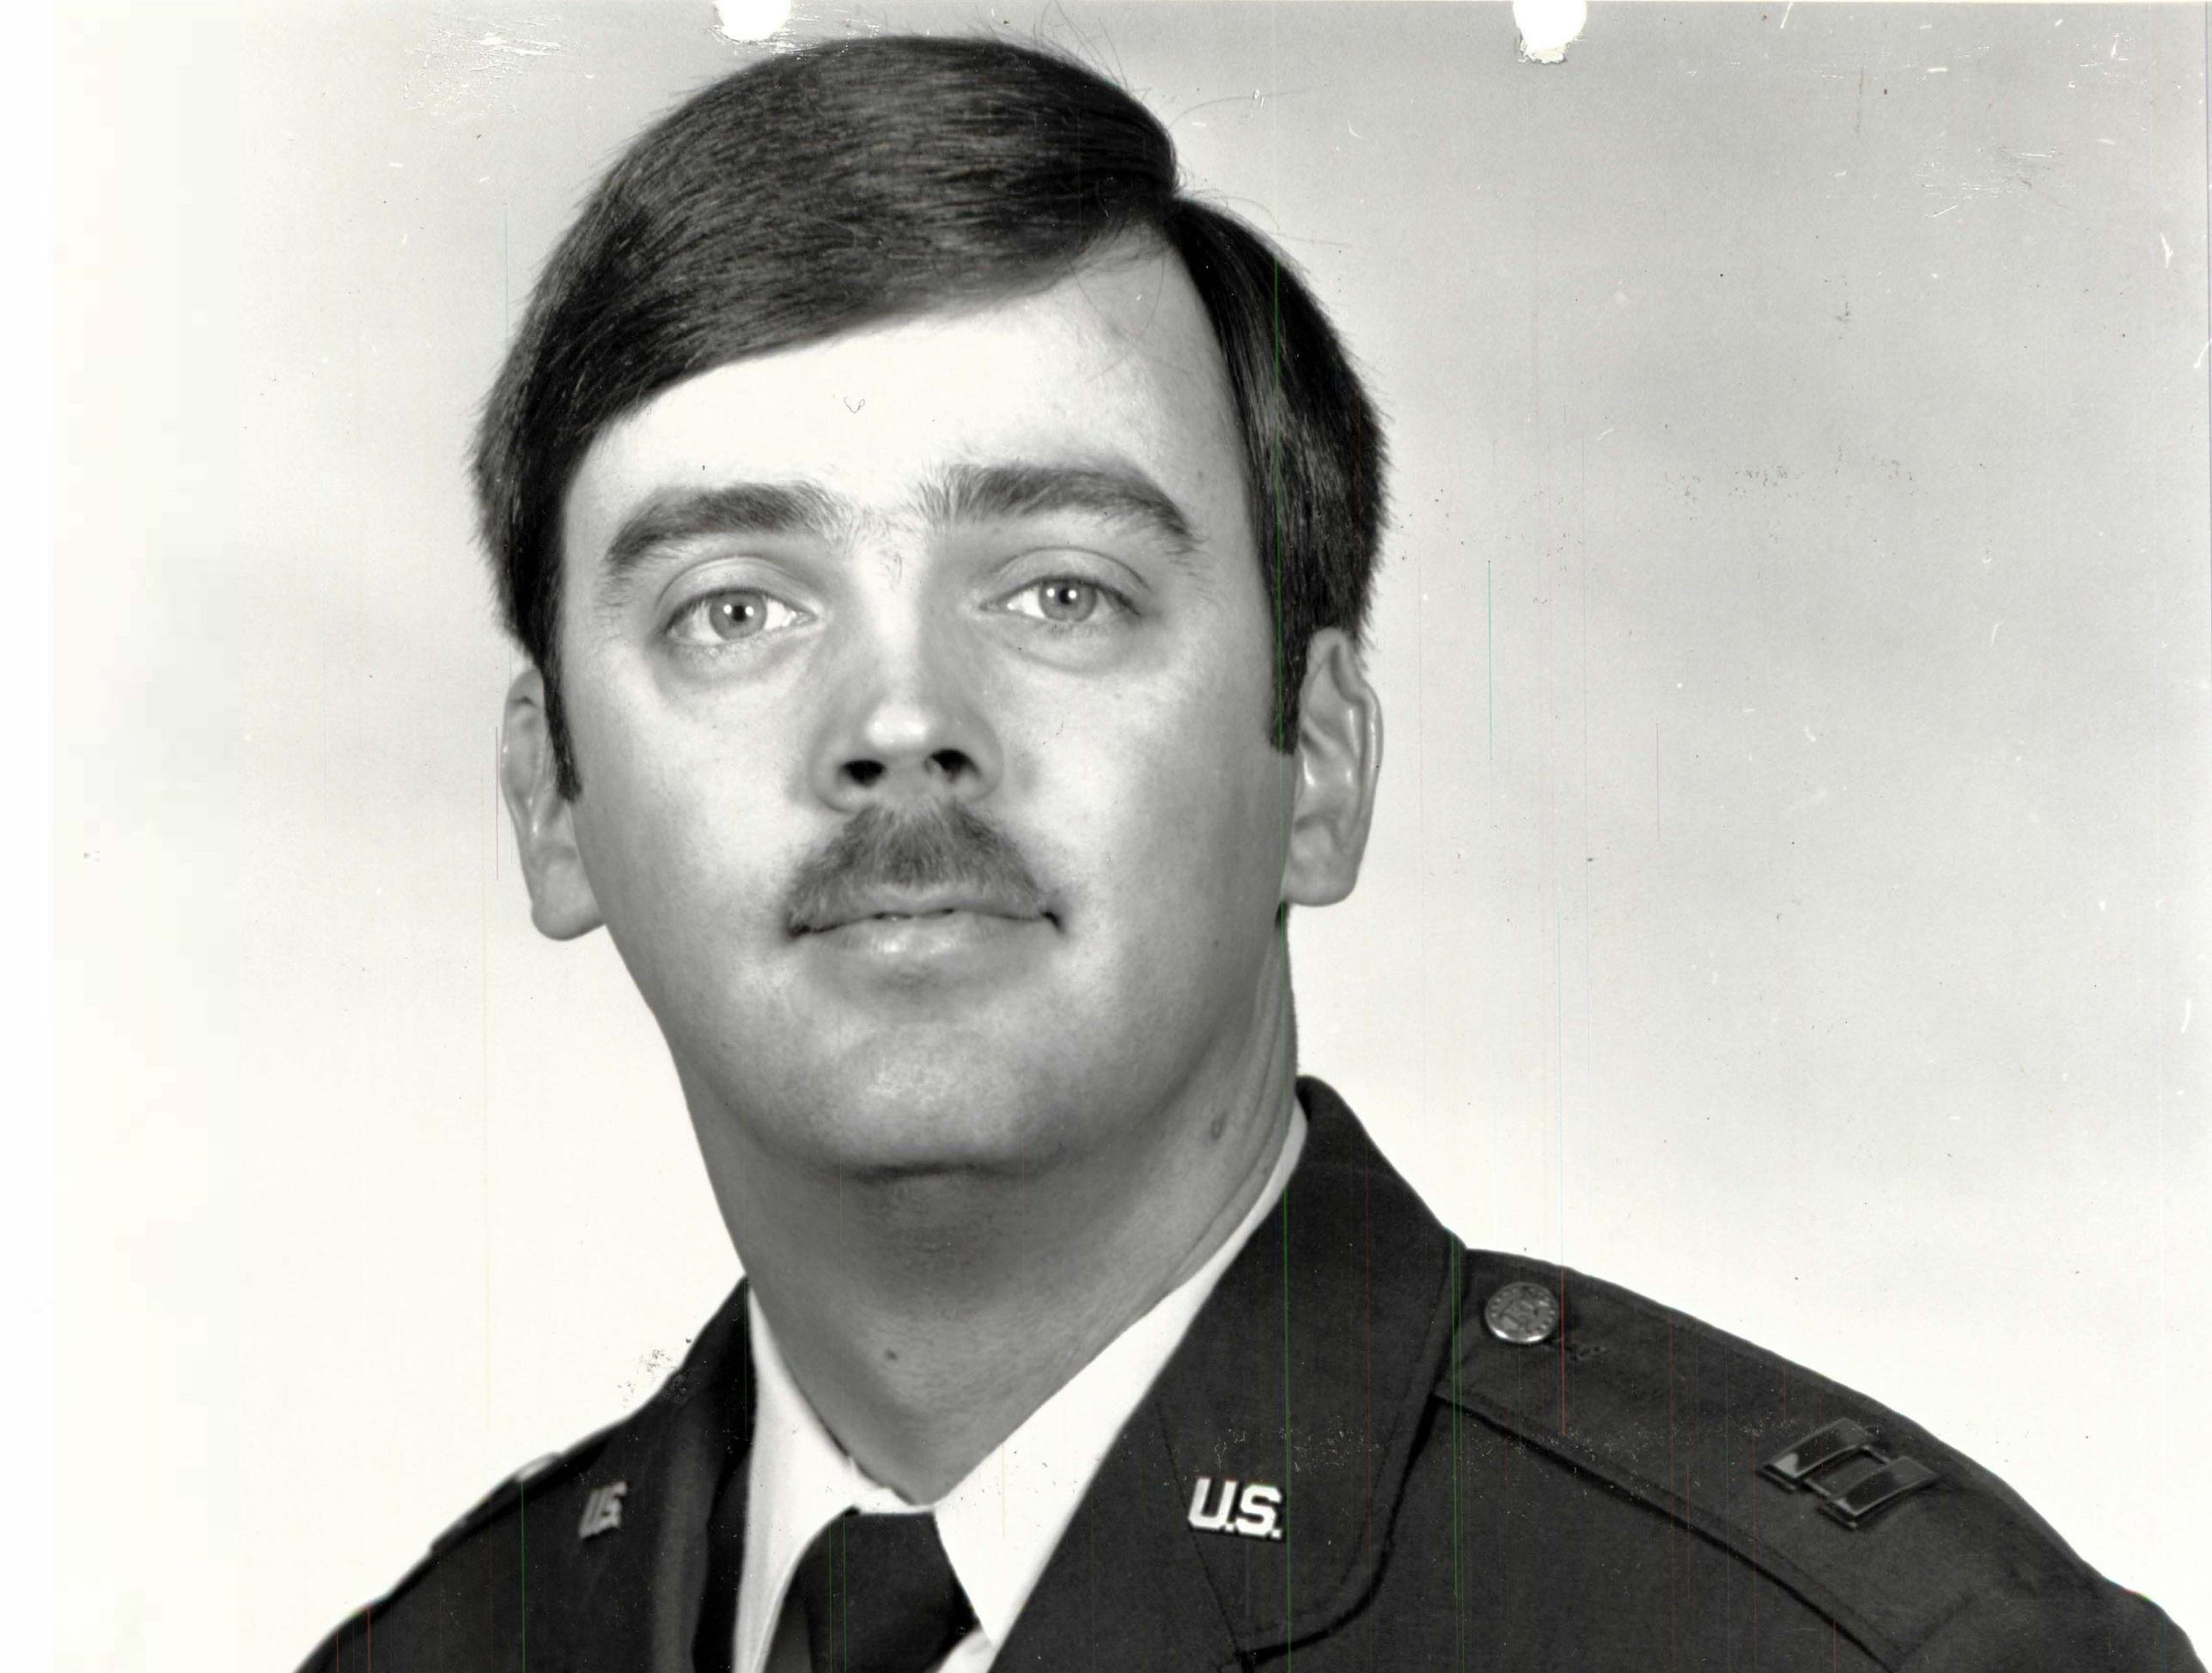 Air Force Officer Missing For 35 Years Found Living In California